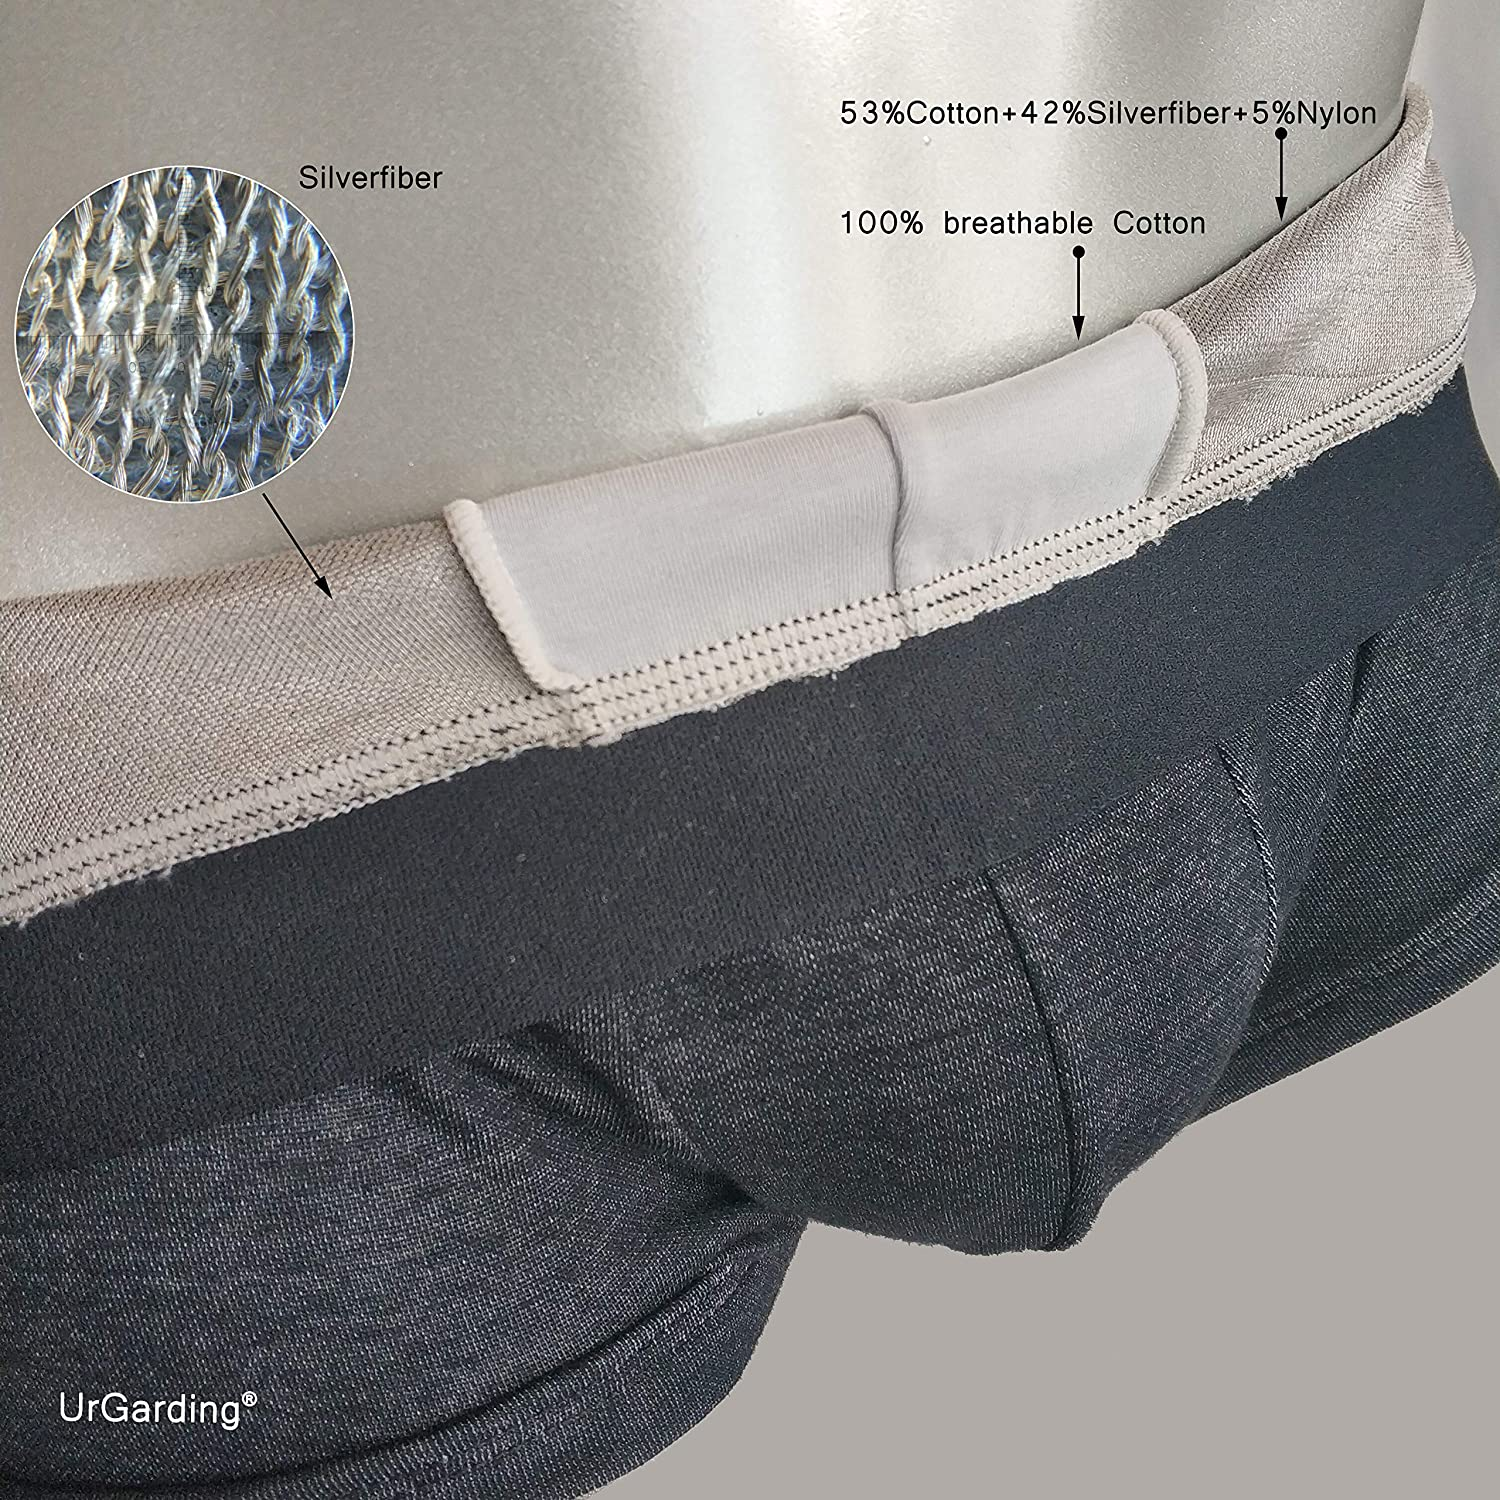 UrGarding EMF shielding boxer brief protect your pouch with anti radiation underwear